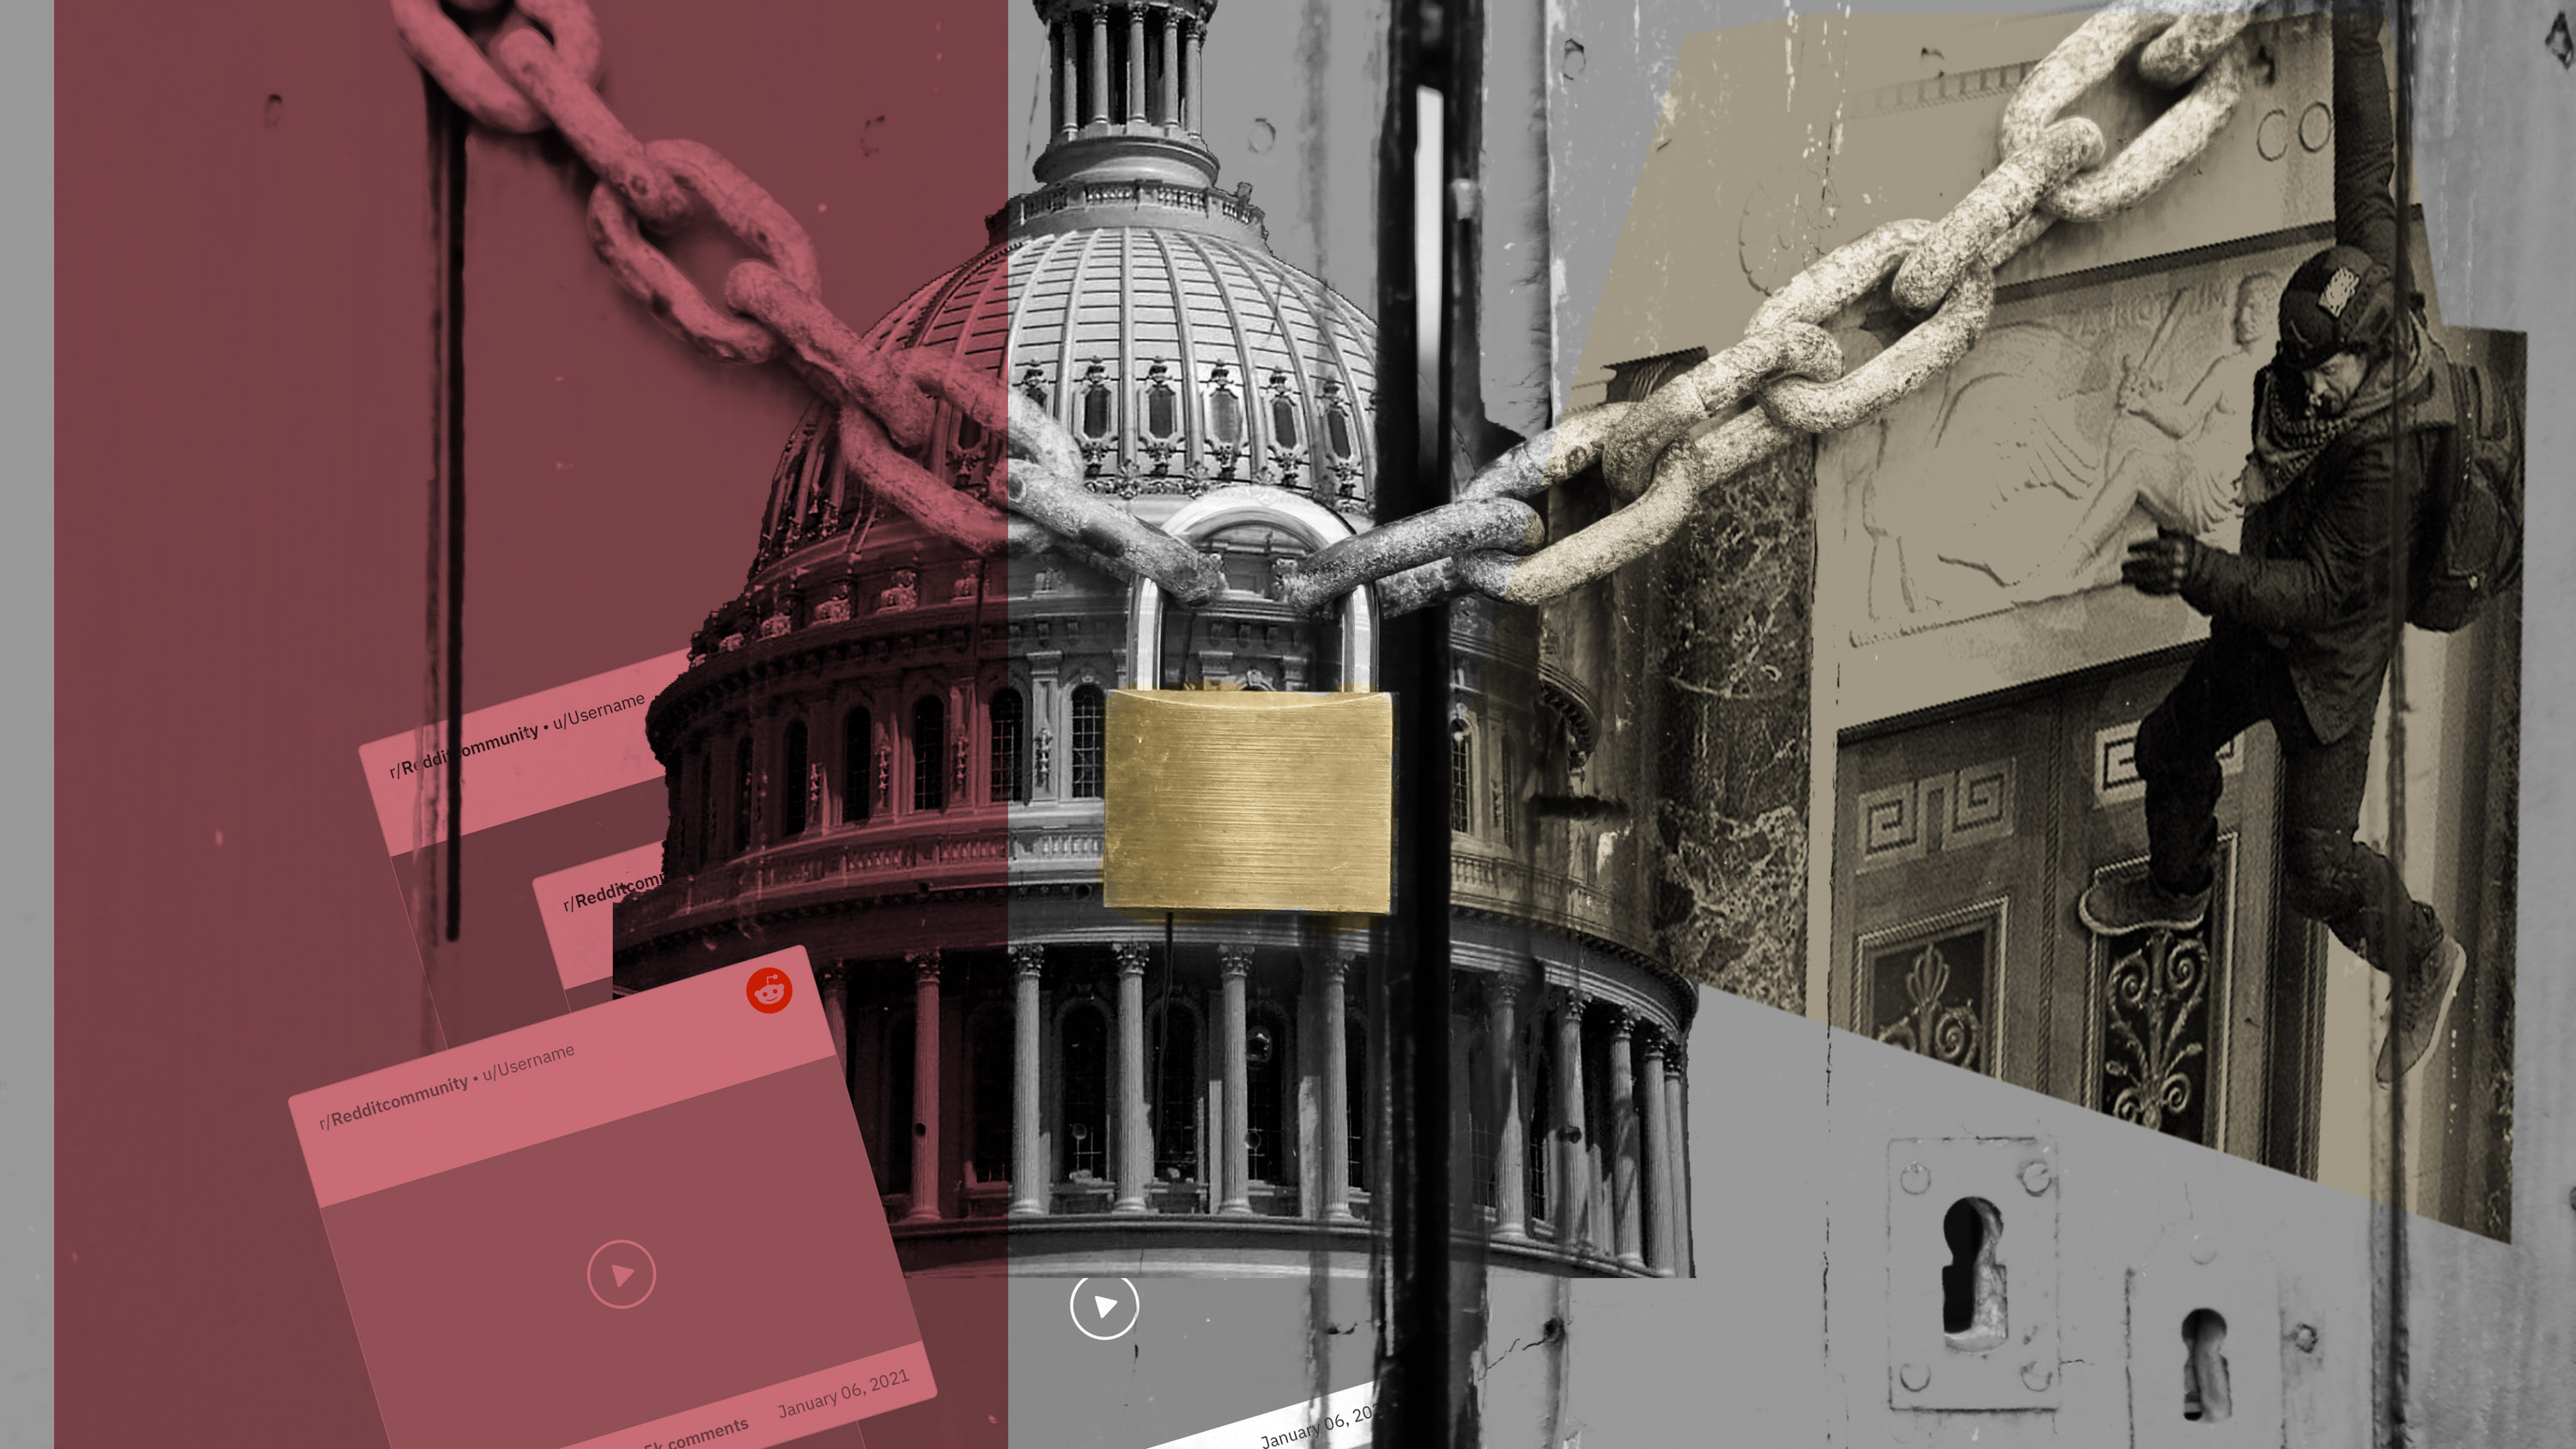 image showing capitol building in washington with images of mob and social media screen grabs over it with lock and chain overlaid on top